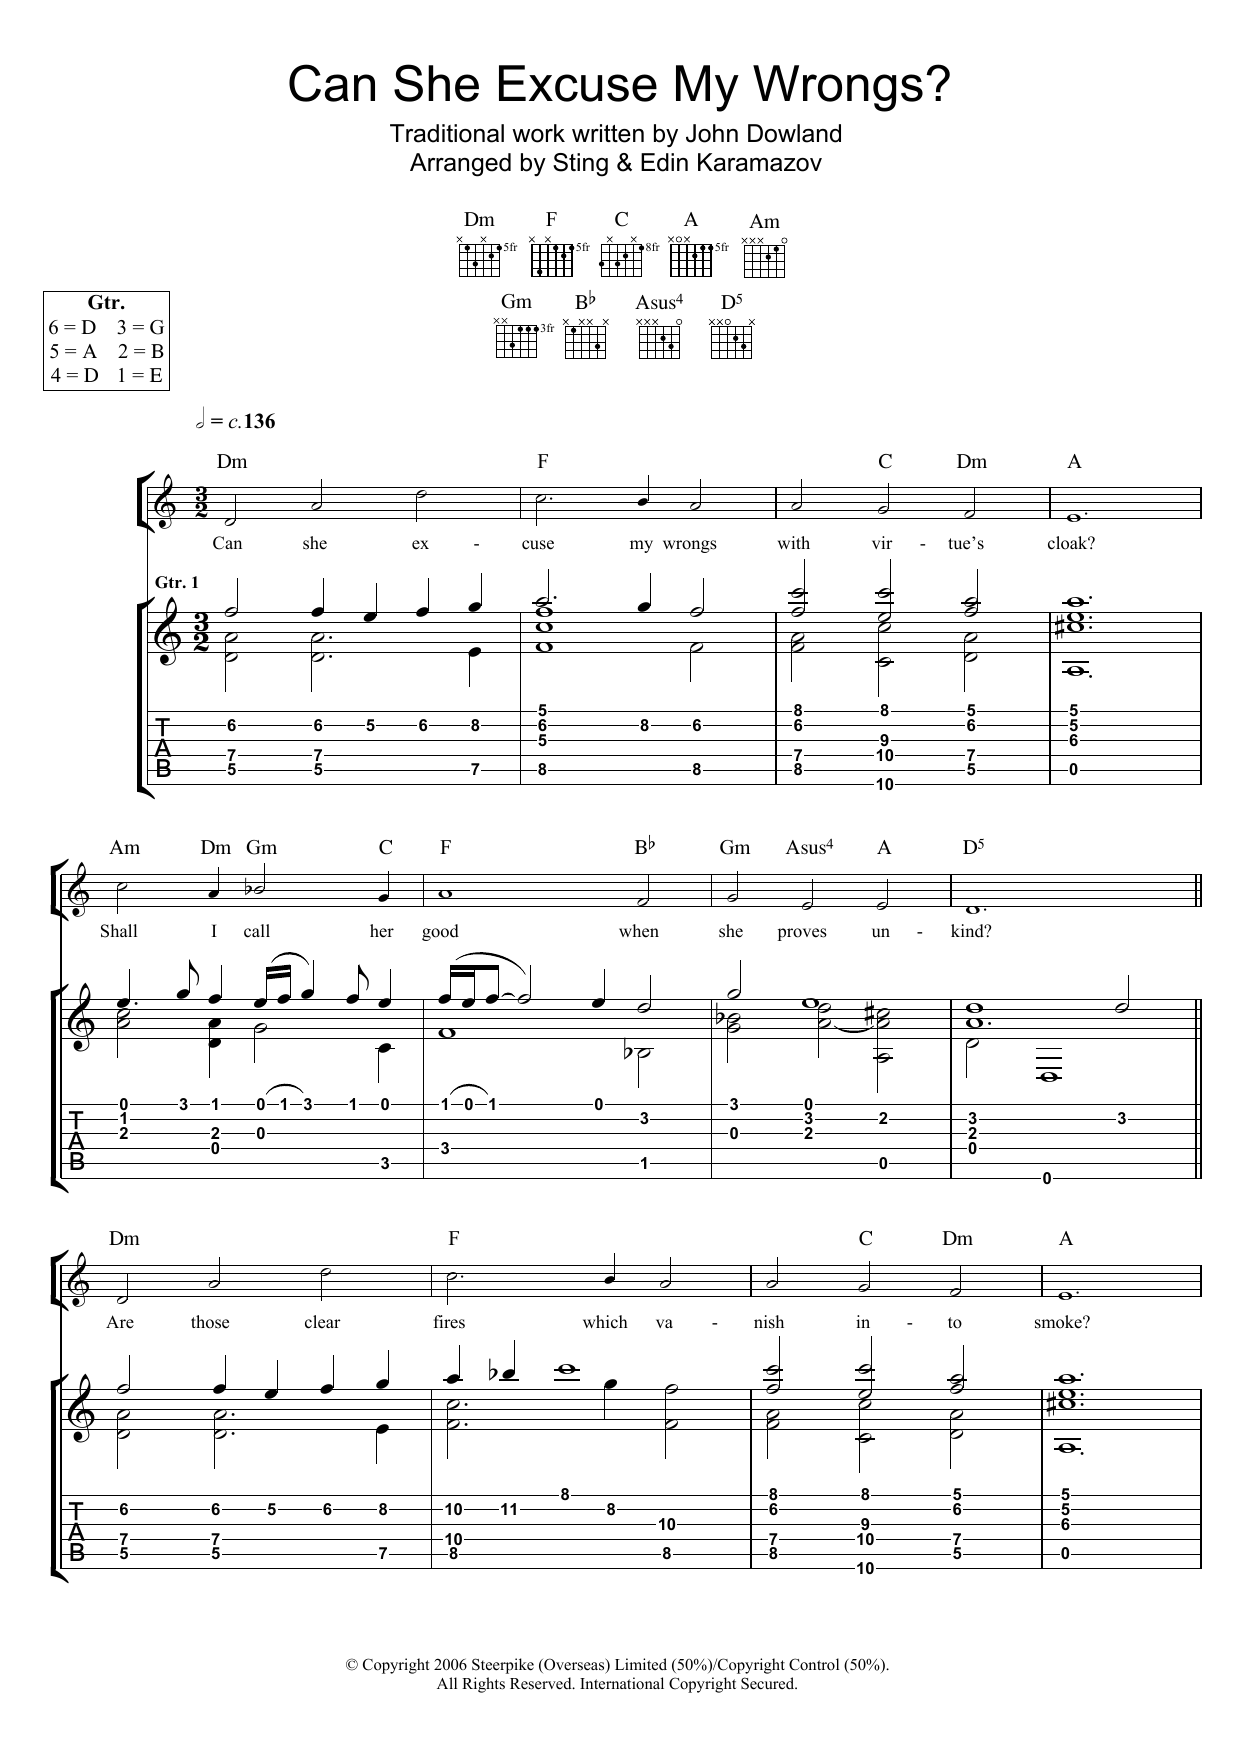 Can She Excuse My Wrongs? (as performed by Sting and Edin Karamazov) (Guitar Tab)